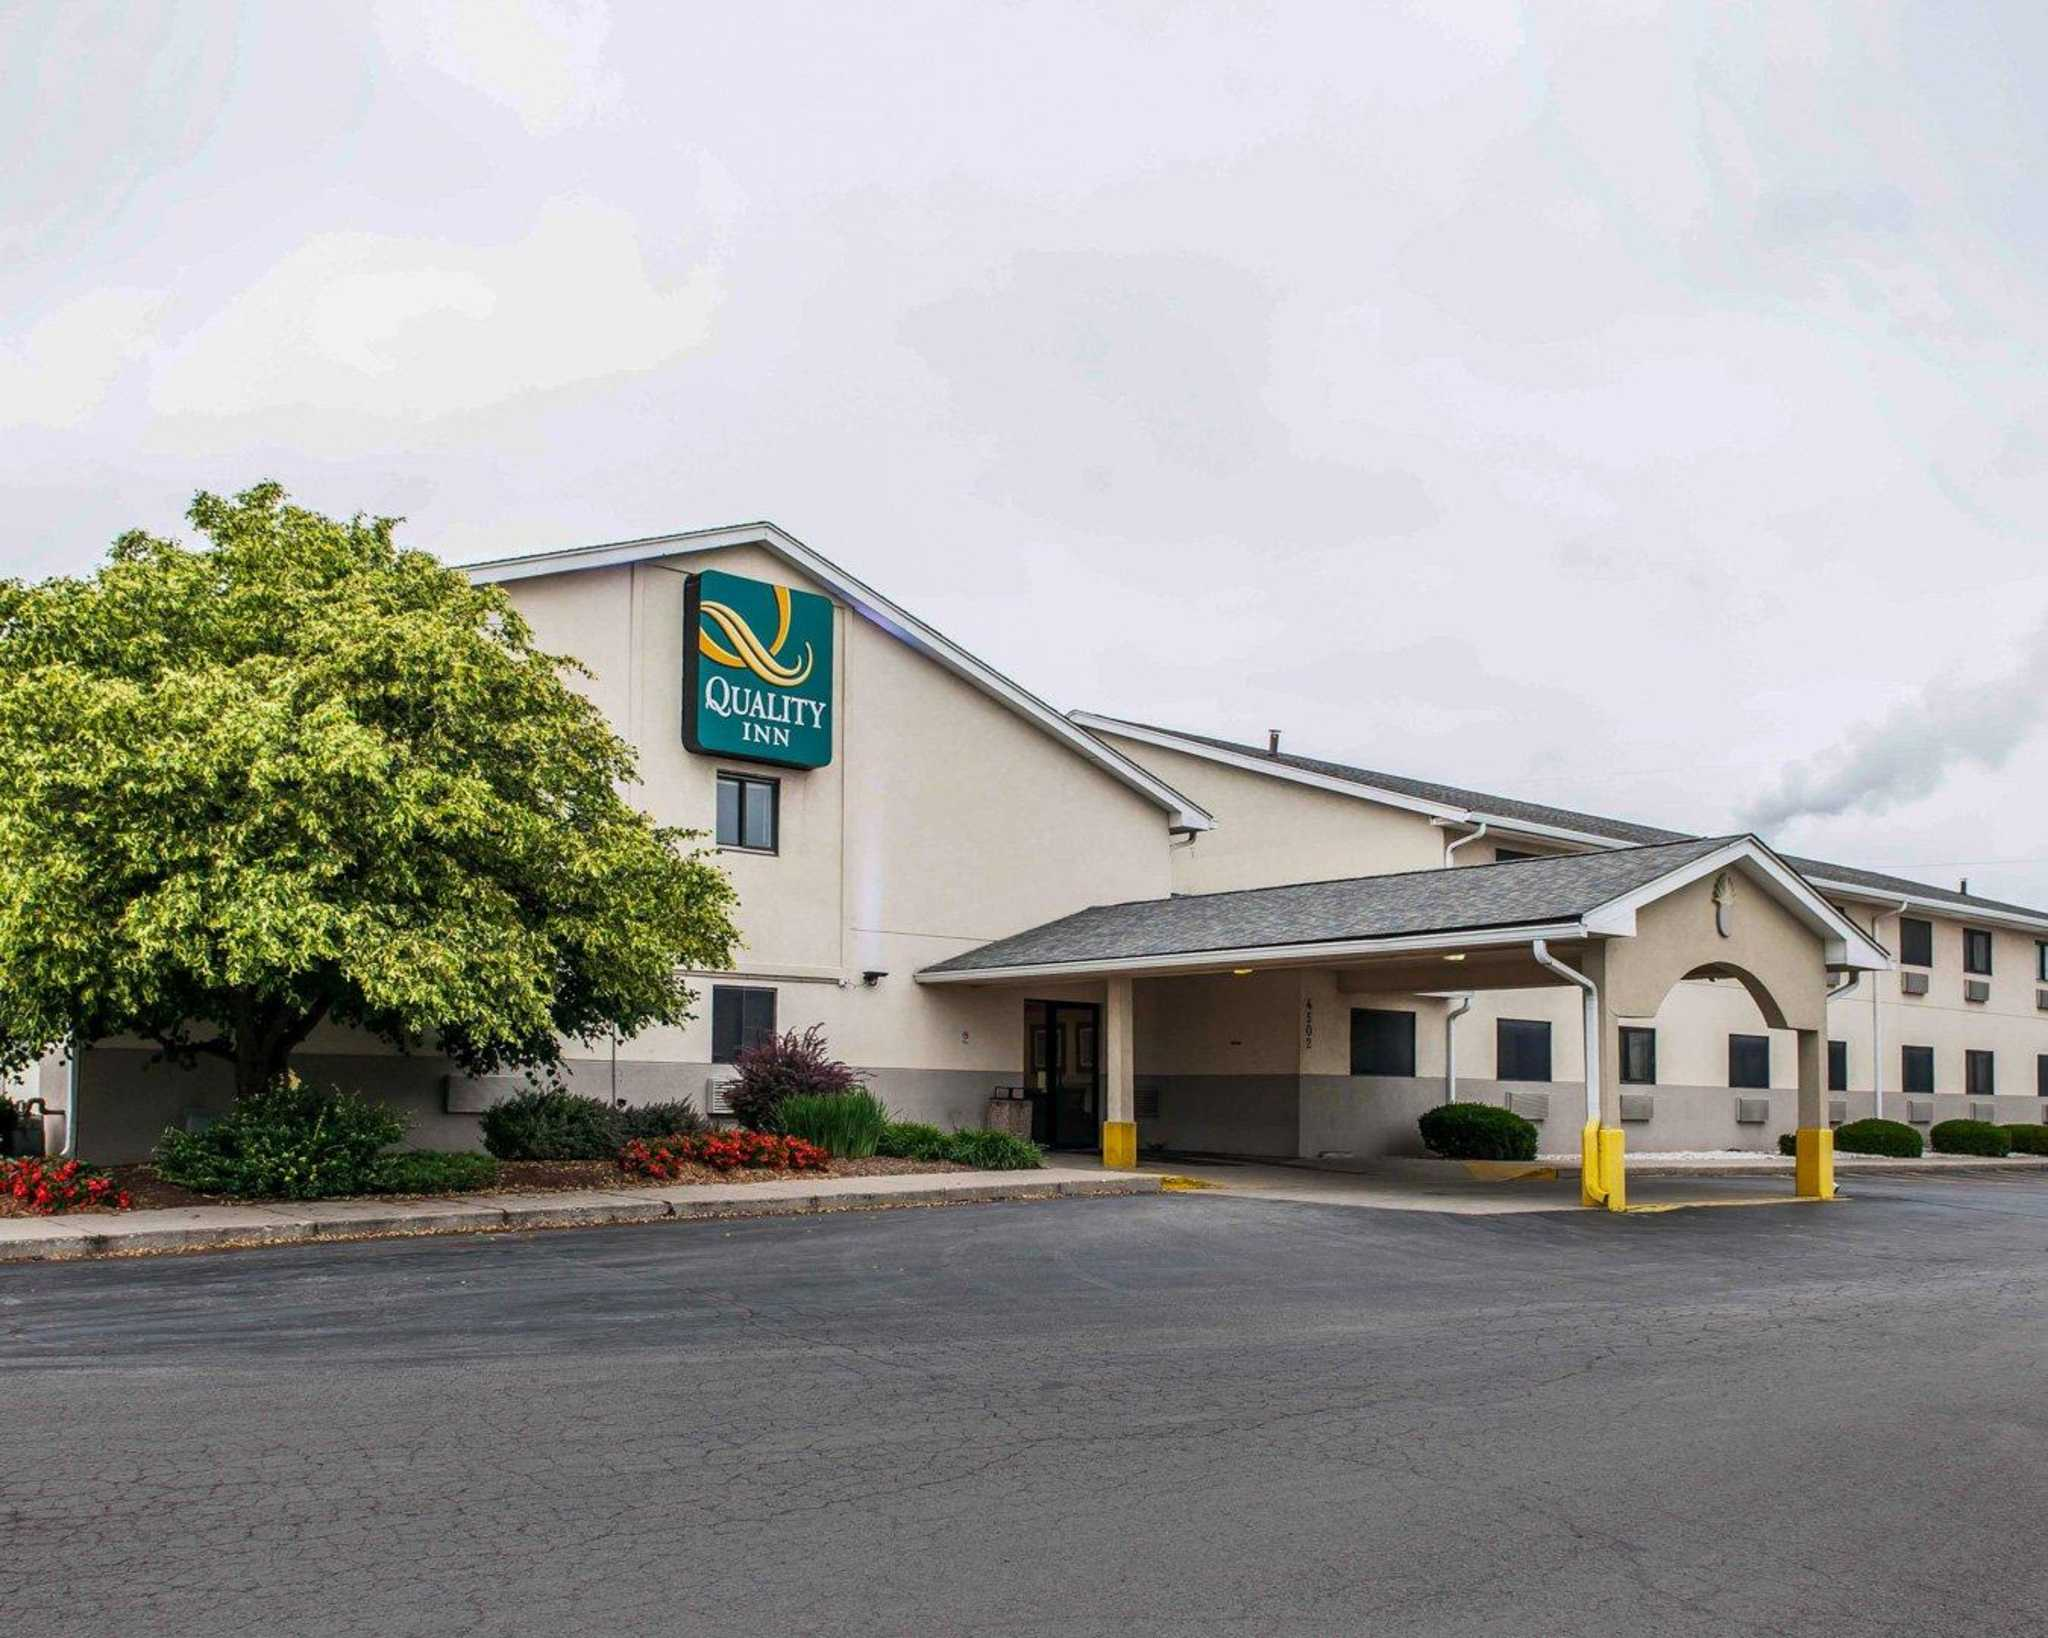 Quality Inn South at Indianapolis (and vicinity), Indiana, United States of America: Find the best deals with user reviews, photos, and discount rates for Quality Inn South at Orbitz /5(12).